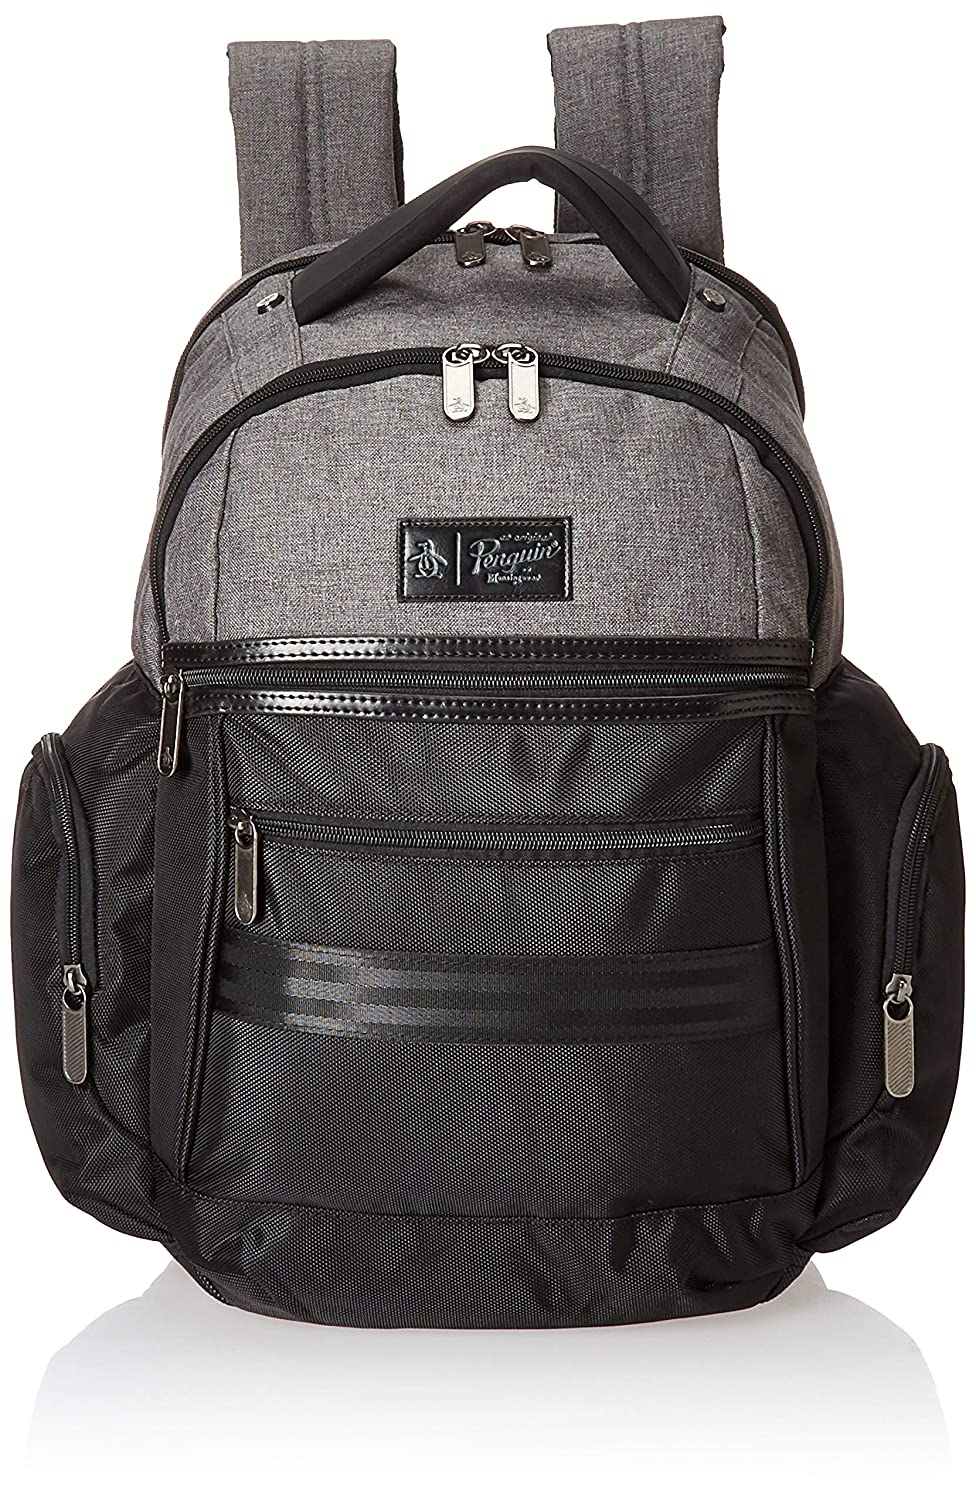 ORIGINAL PENGUIN Classics Backpack Fits Most 15-inch Laptop and Notebook, Black Grey Crosshatch, One Size